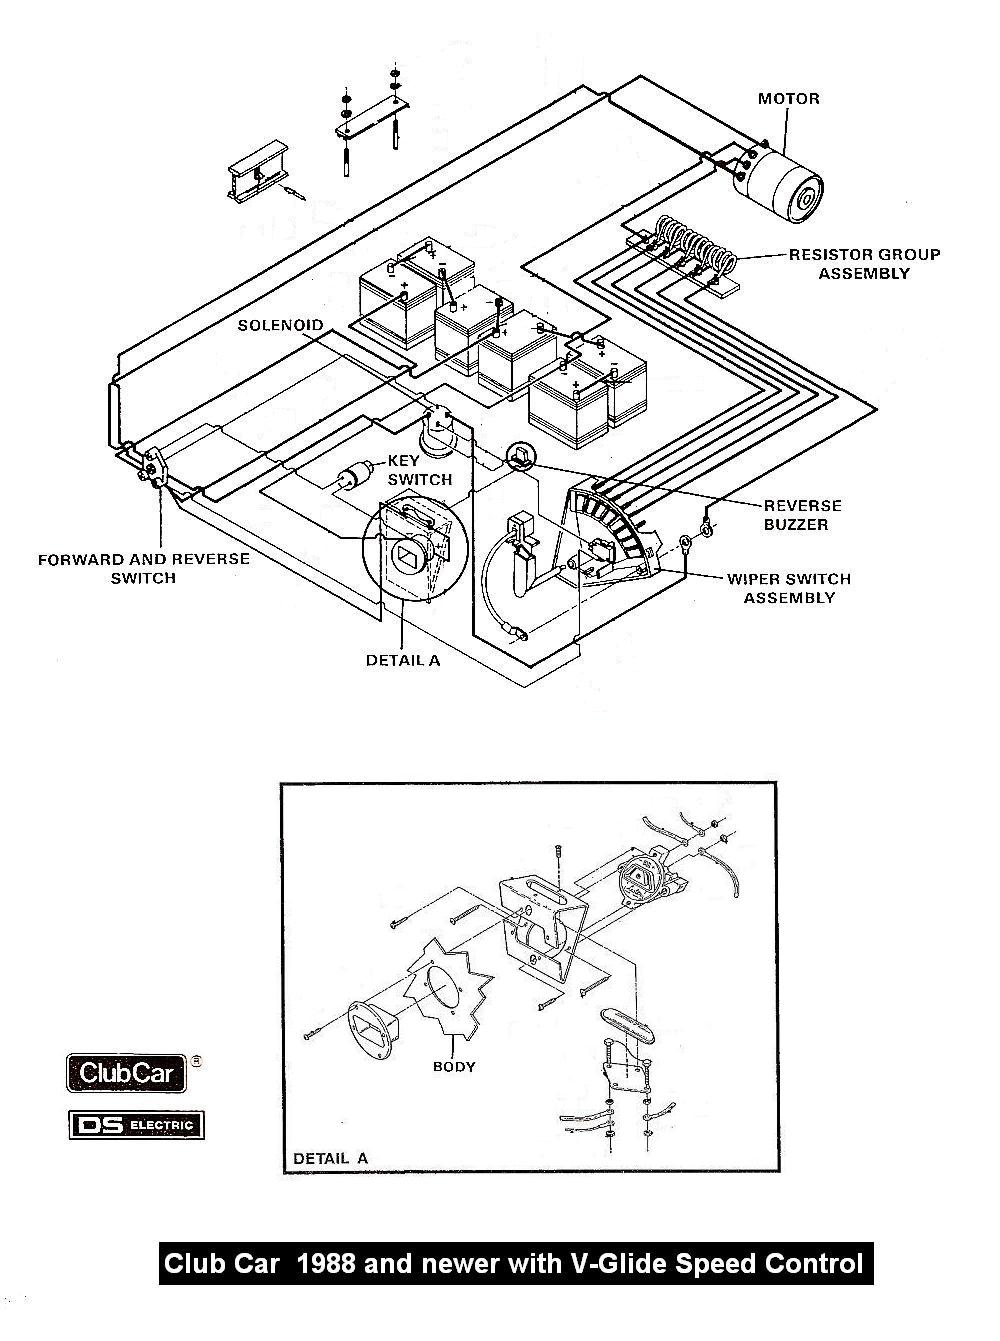 wiring diagram 1989 ezgo golf cart with 8dyme Electric Vehicles Own 2006 Club Car Batteries on Golf Cart Solenoid Wiring Diagram further Ez Go 20484 Charger Schematic Wiring Diagrams as well 6msfw Ezgo T27893 Need Wiring Diagram 1993 Ezgo Stroke together with 1985 Ez Go Wiring Diagram additionally E Z Go Golf Wiring Diagram.